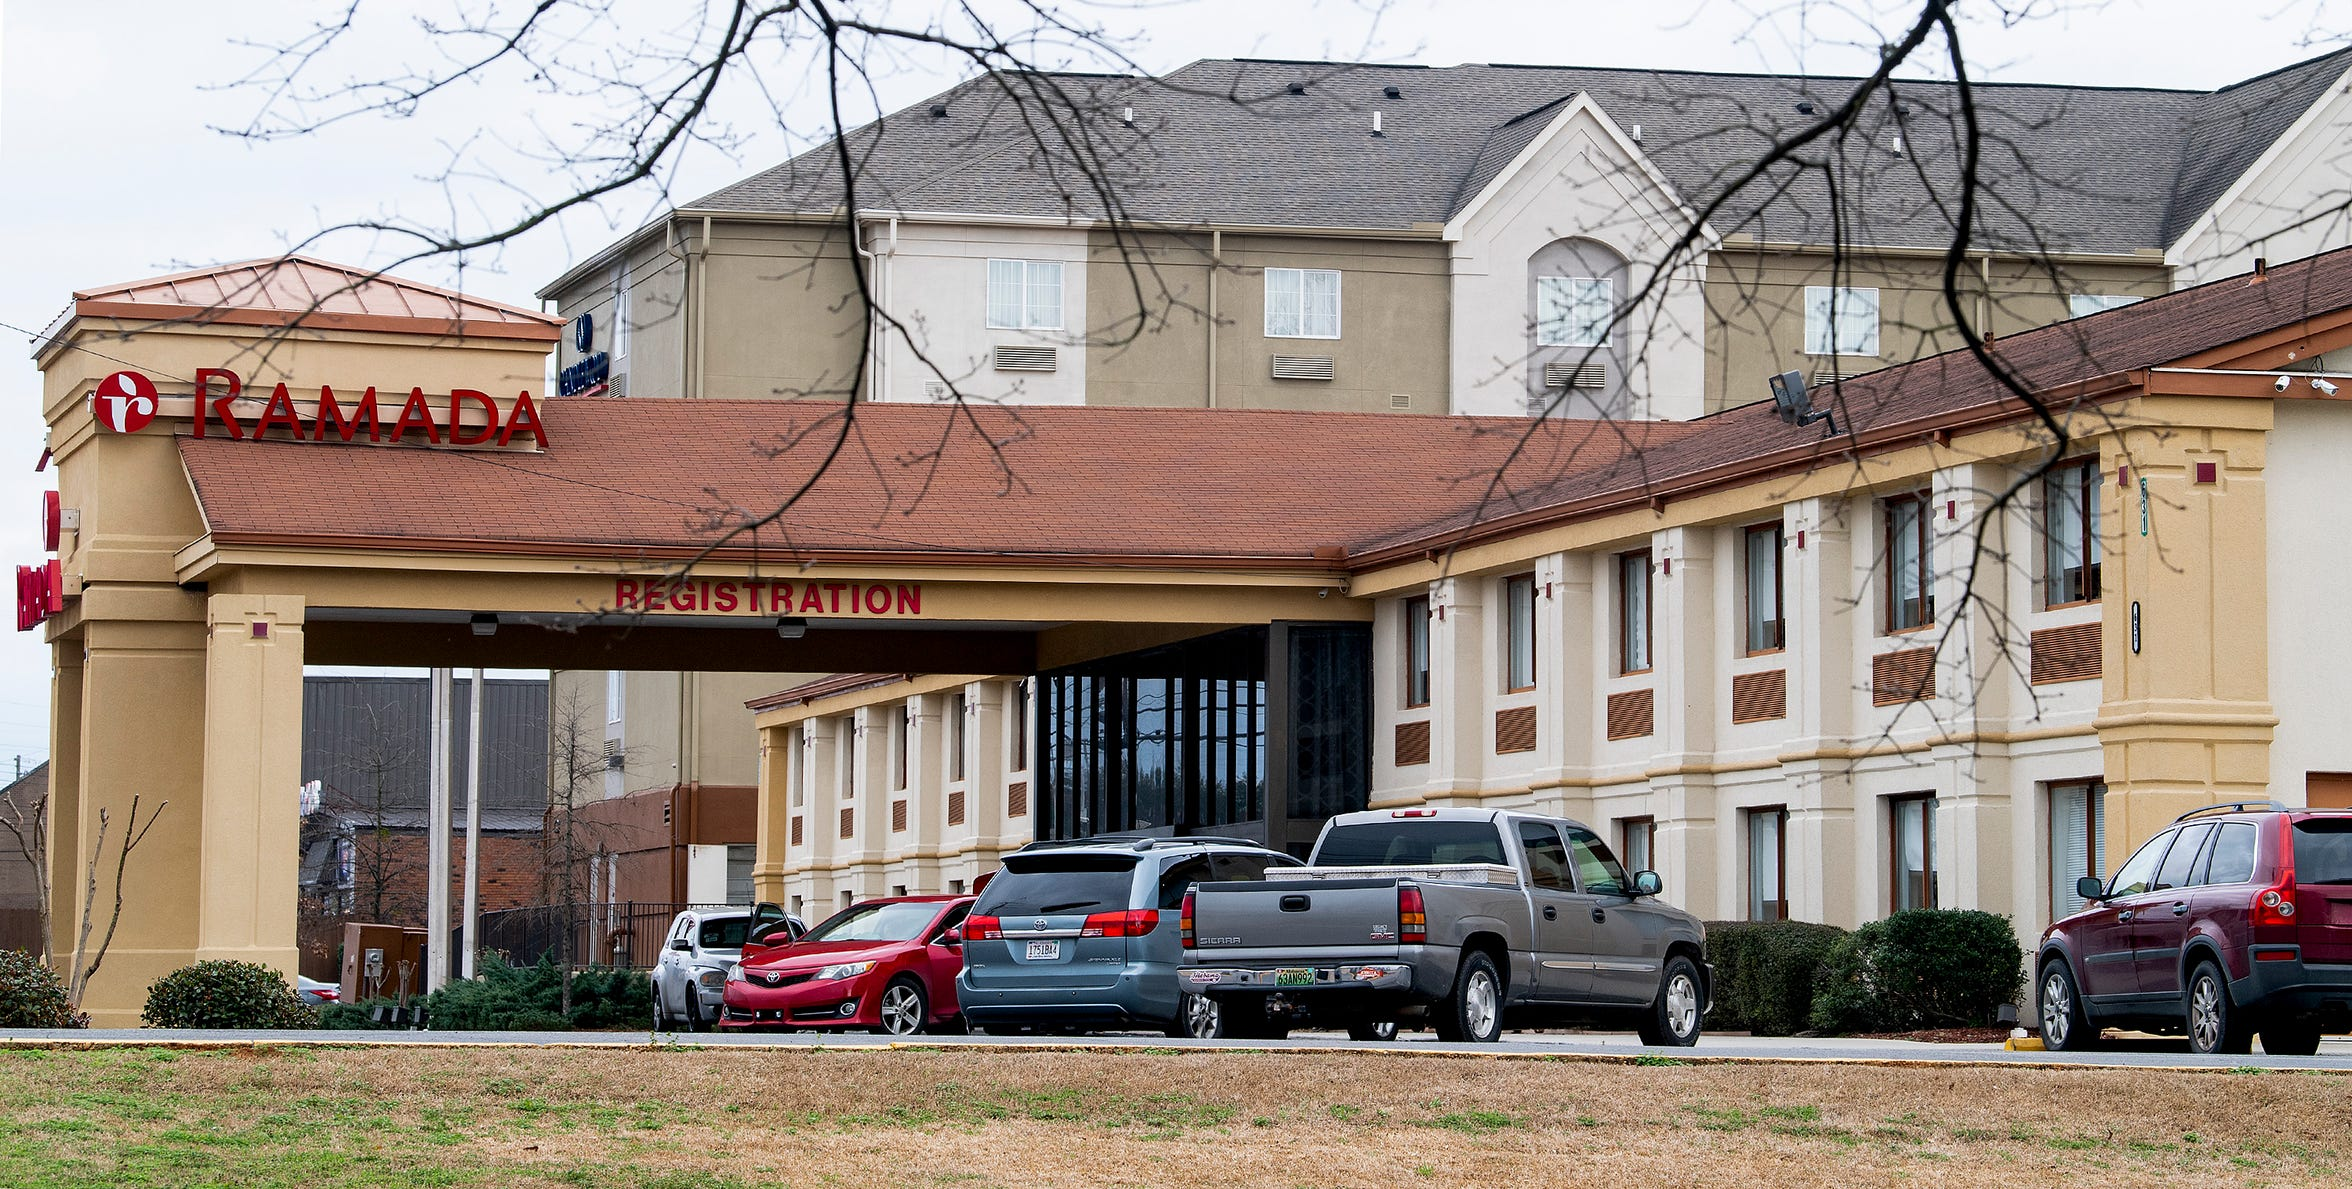 The Ramada Inn on Skyland Blvd. in Tuscaloosa, Ala., on Wednesday February 6, 2019.